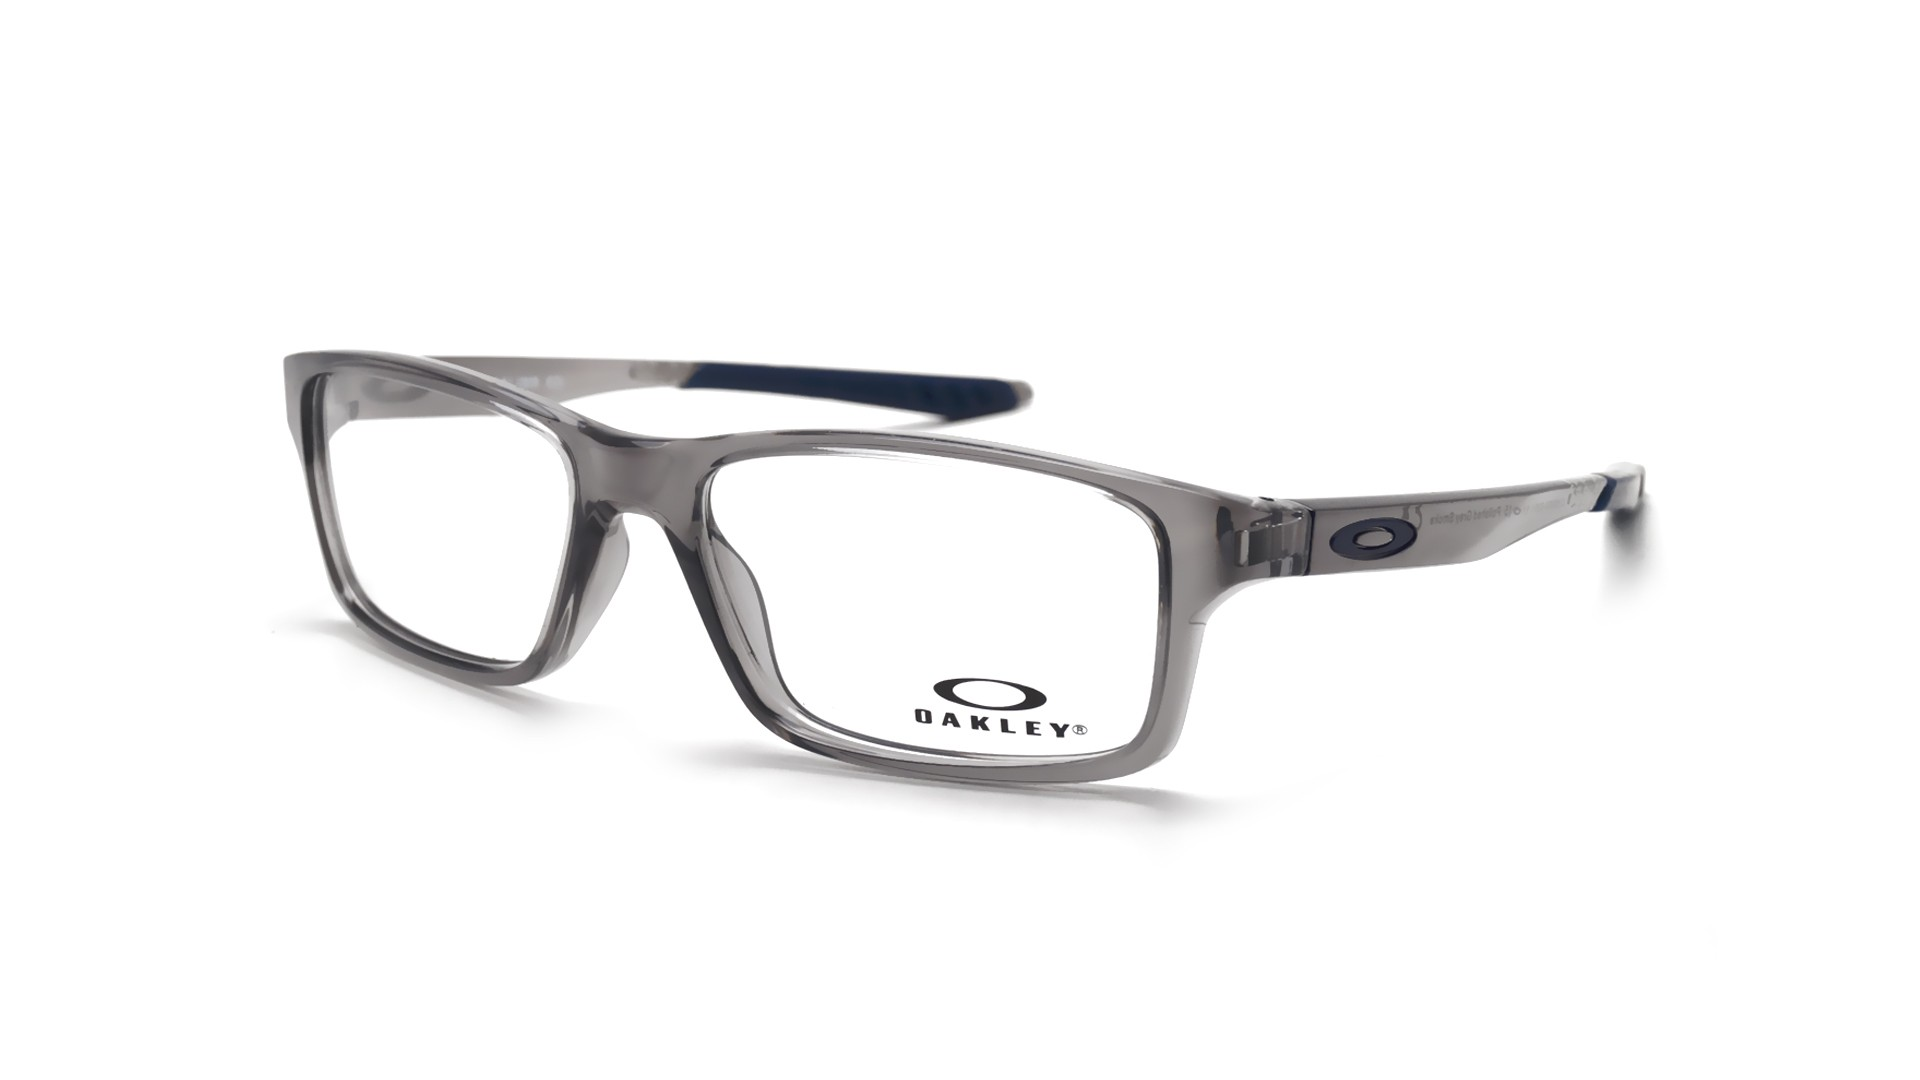 44915feb99 Eyeglasses Oakley Crosslink Xs Grey OY8002 02 51-15 Junior